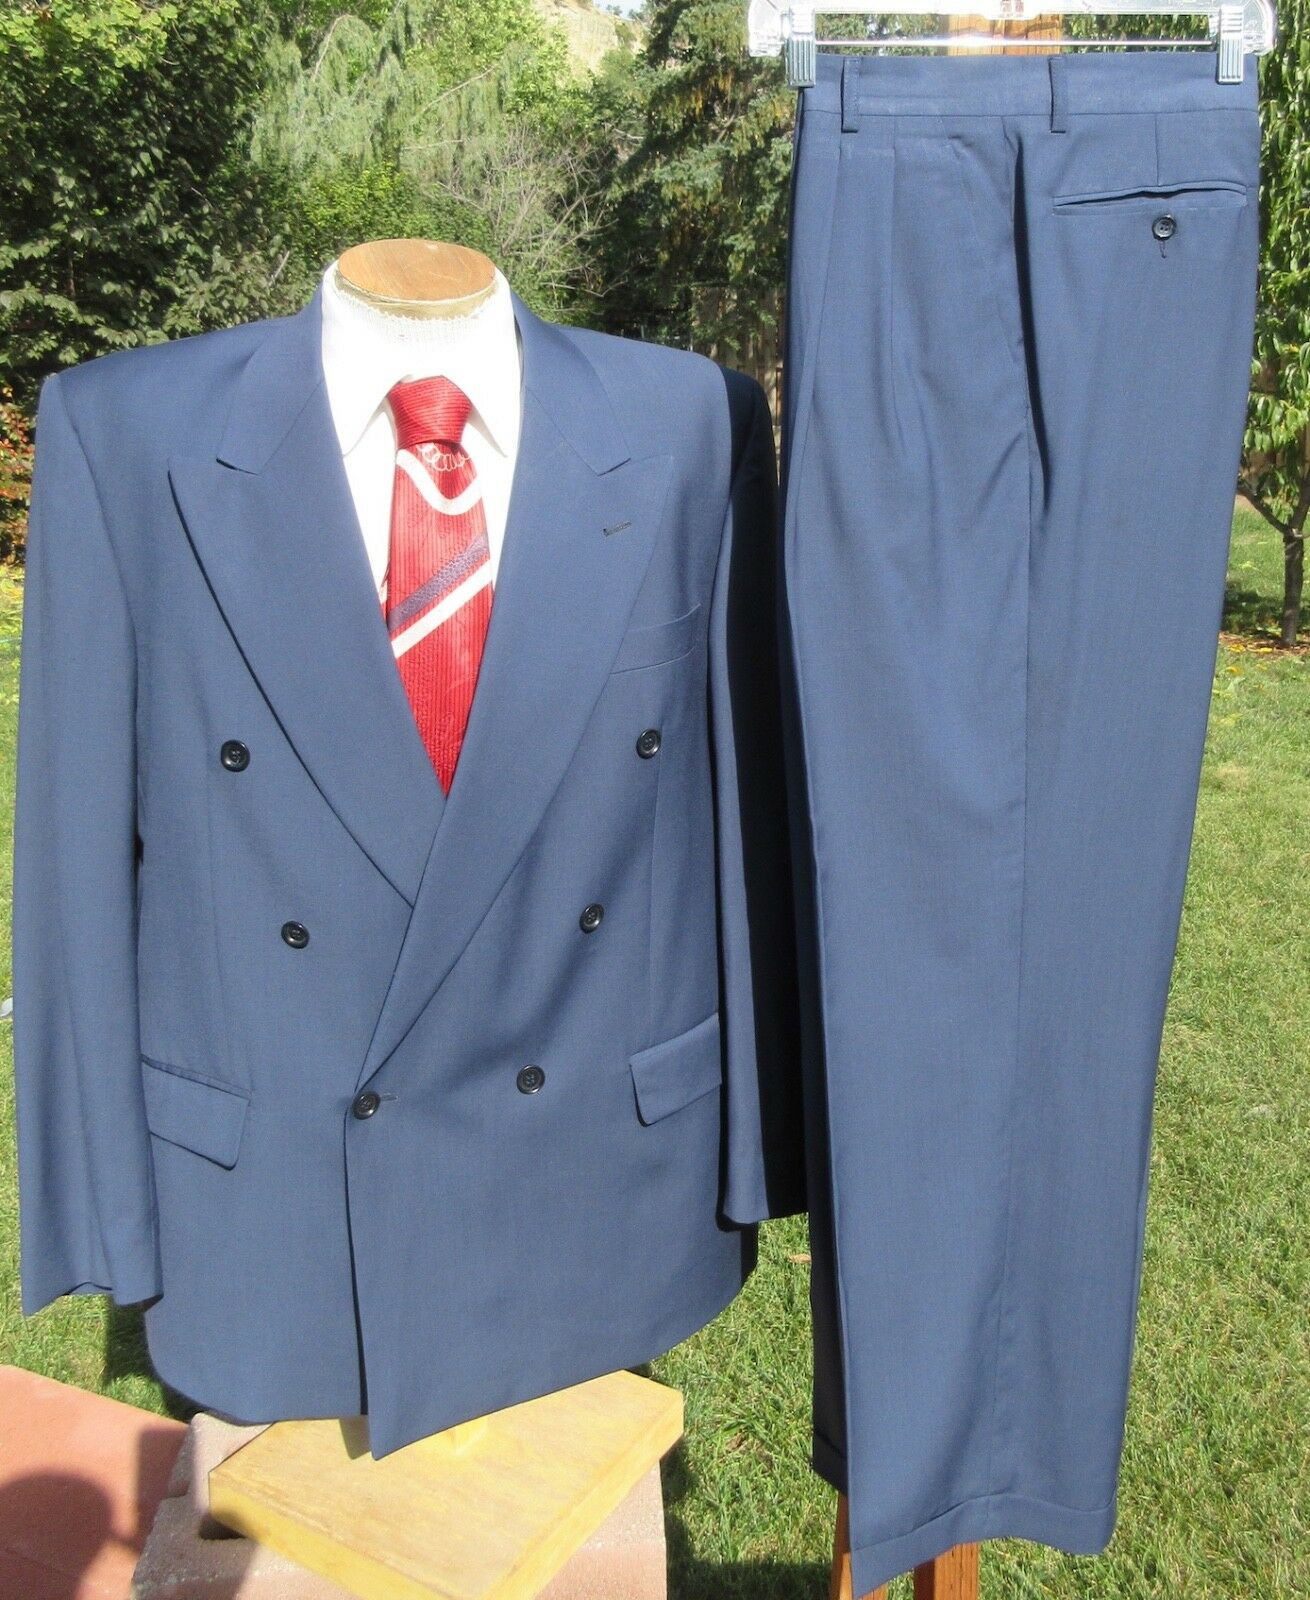 Elegant Double Breasted SUPER 100 Suit 44R 35x29 - Blau Italian Wool by CACHAREL